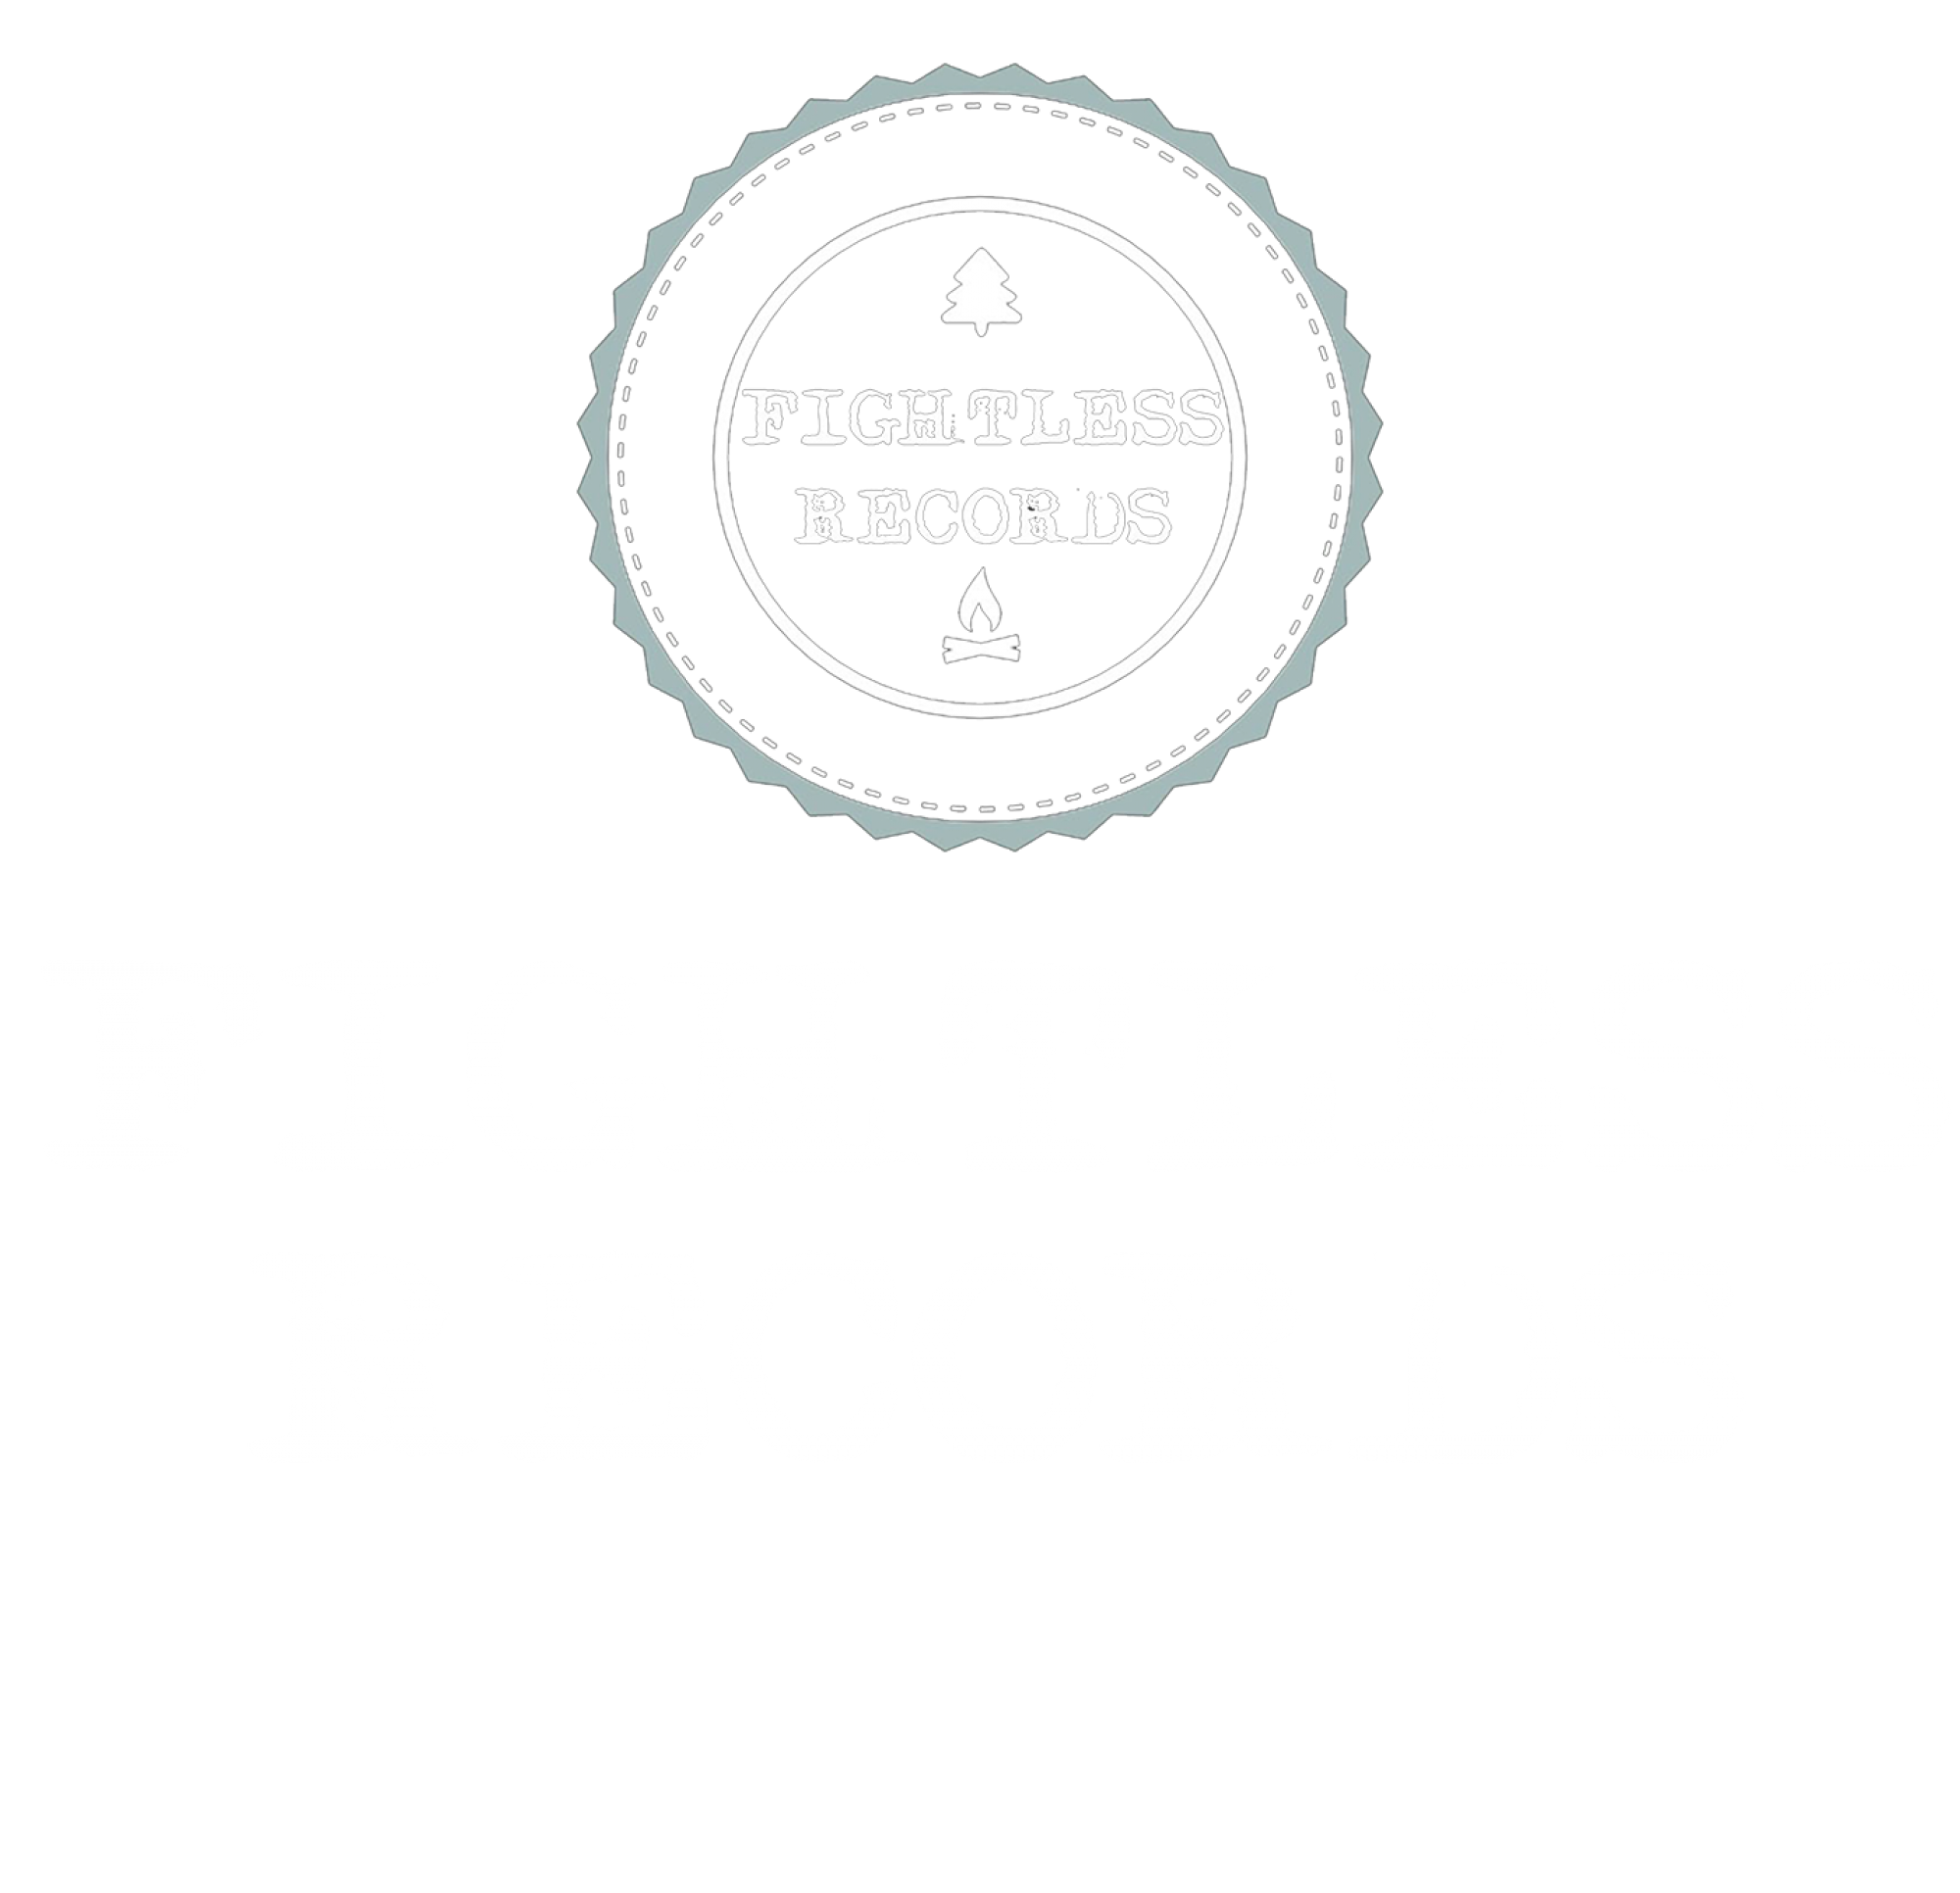 Fightless Records